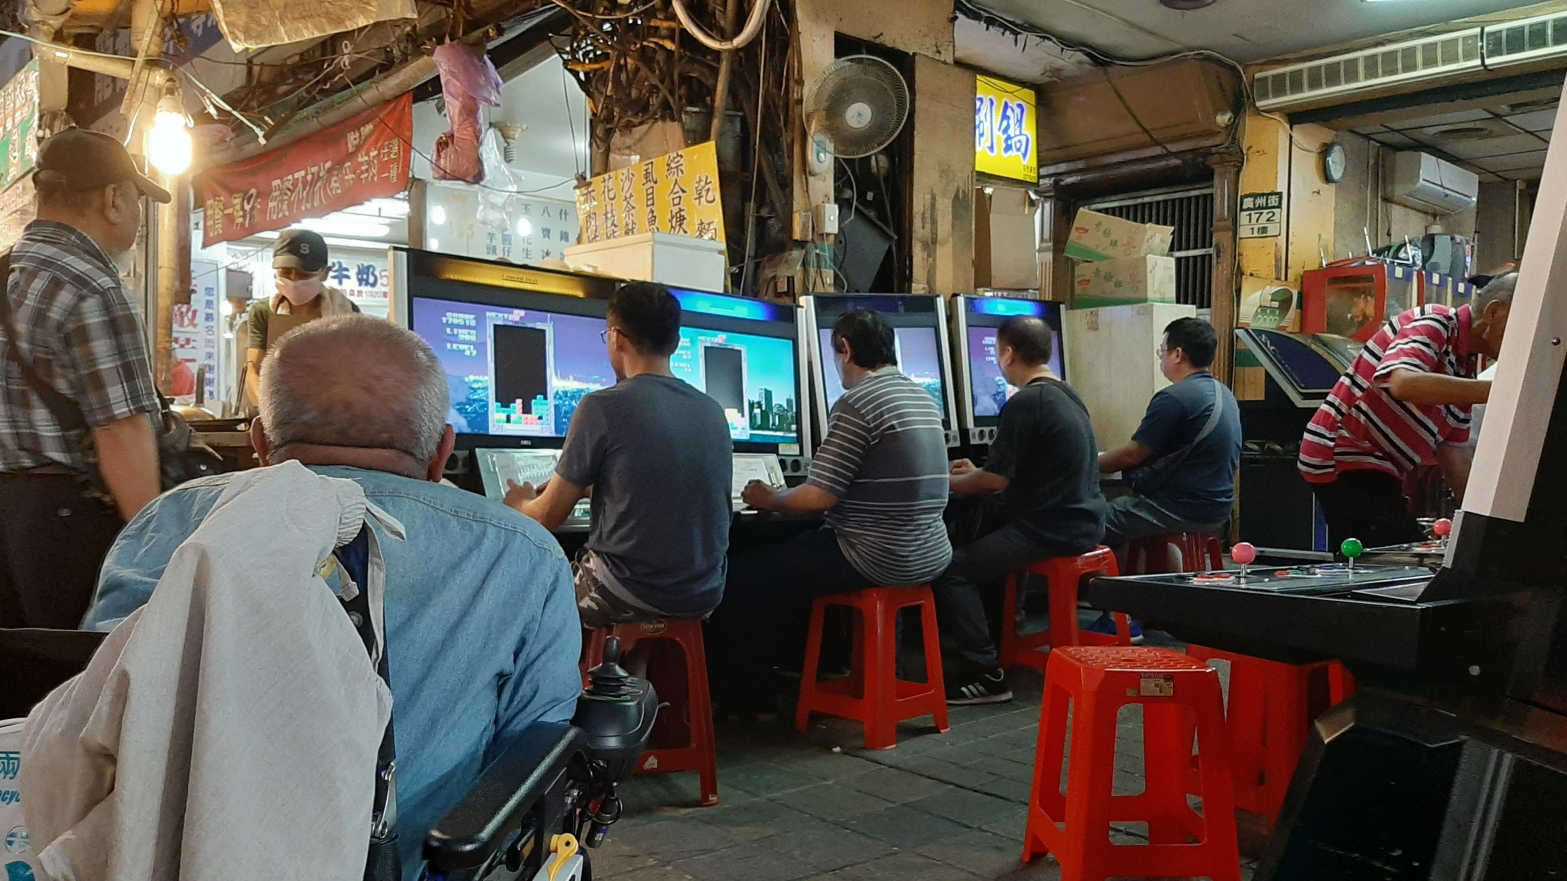 Several men at a Taiwanese night market playing Tetris on large computers.